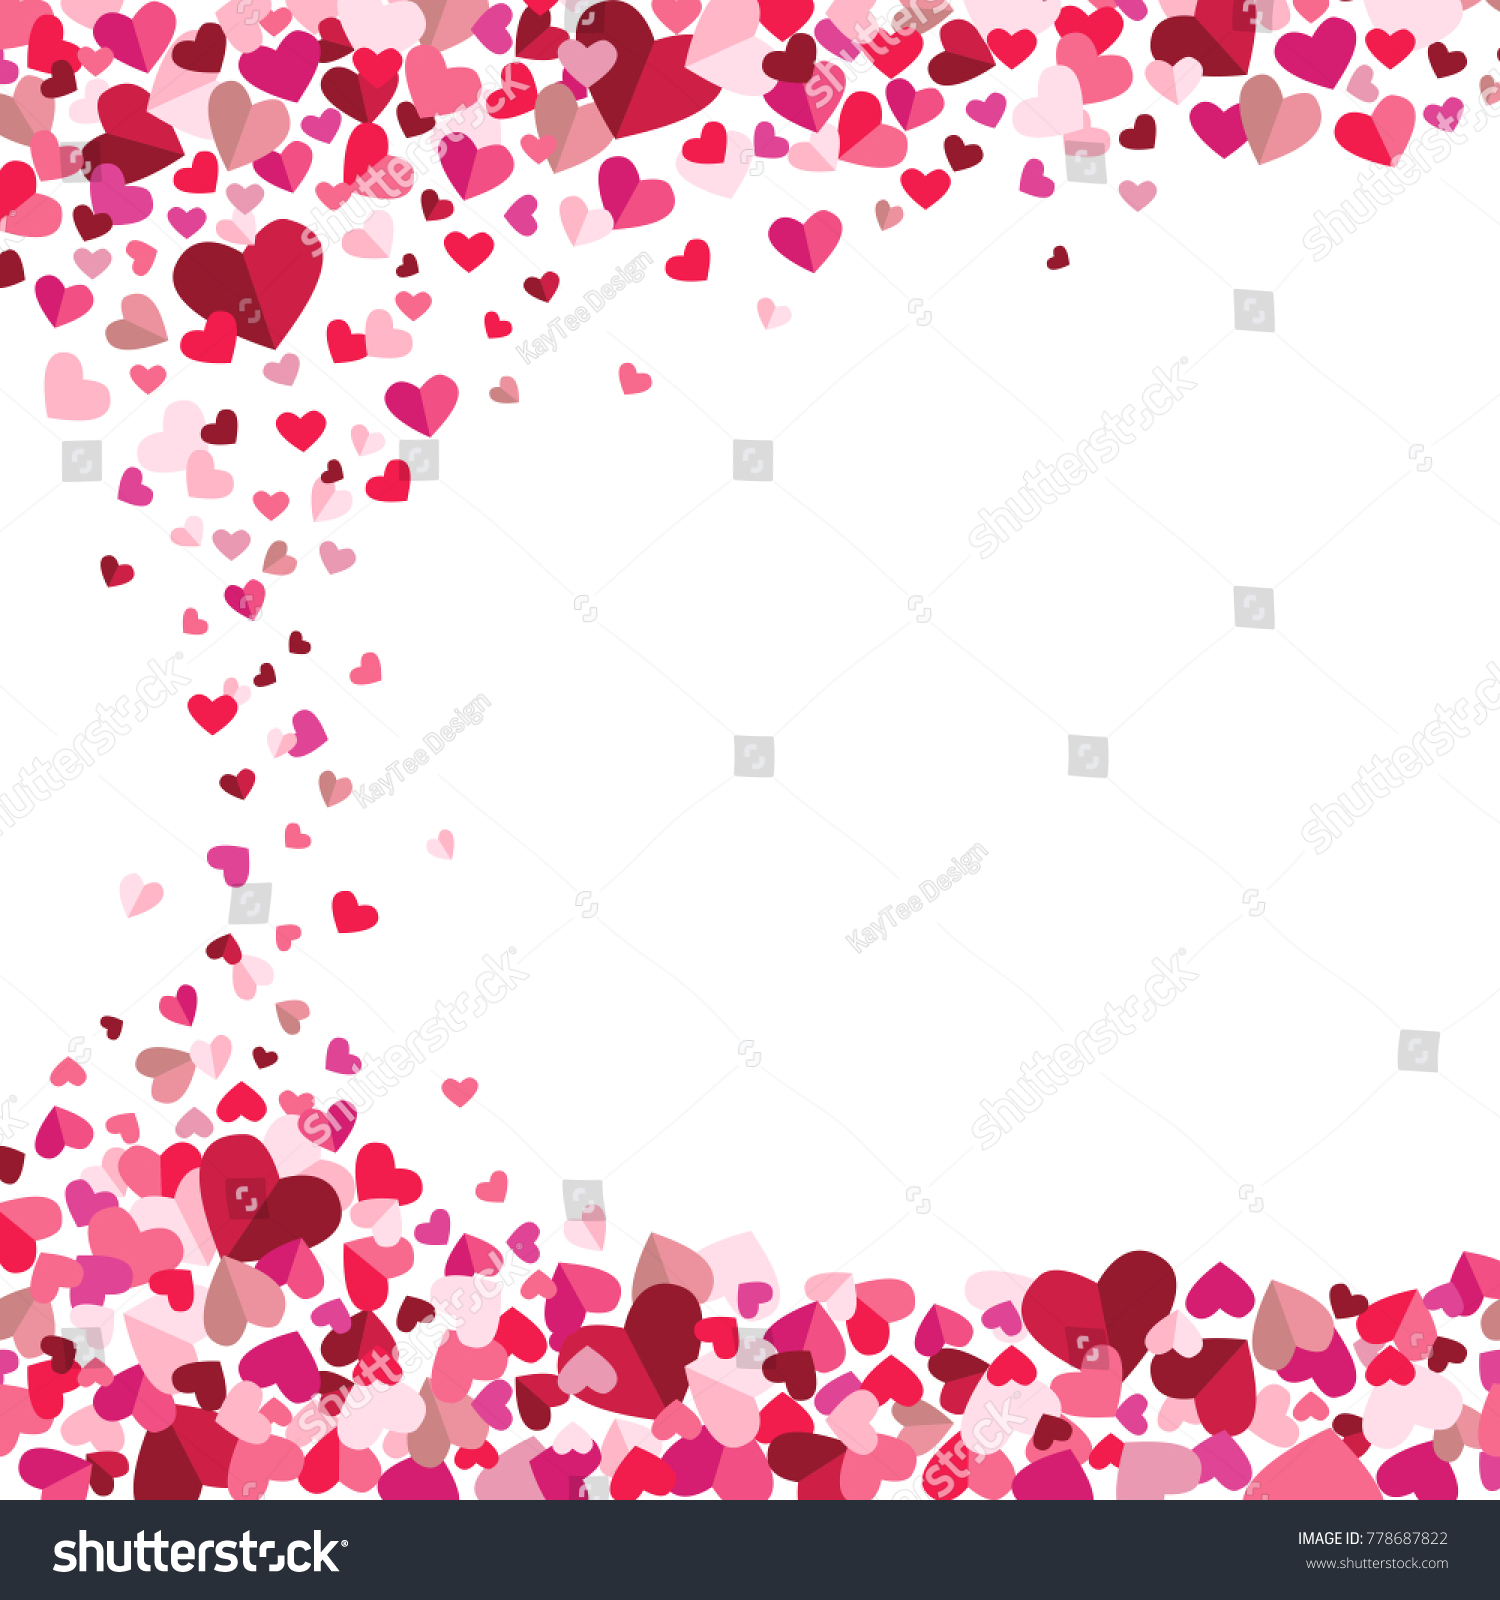 Valentines Day Tumbling Floating Hearts Vector Stock Vector 1500x1600